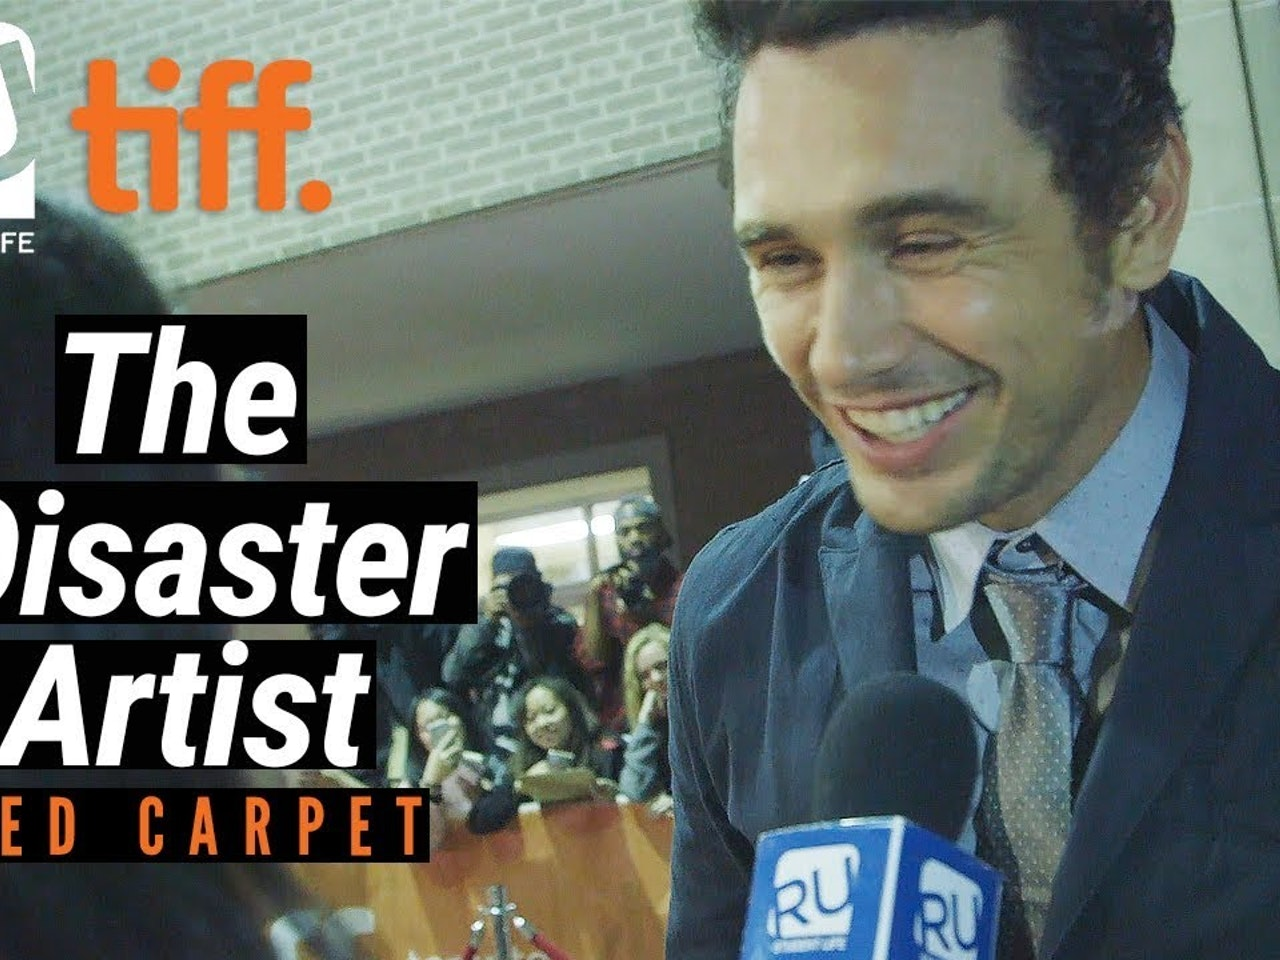 Golden Globes Winner James Franco Interview at 'The Disaster Artist' TIFF17 Premiere